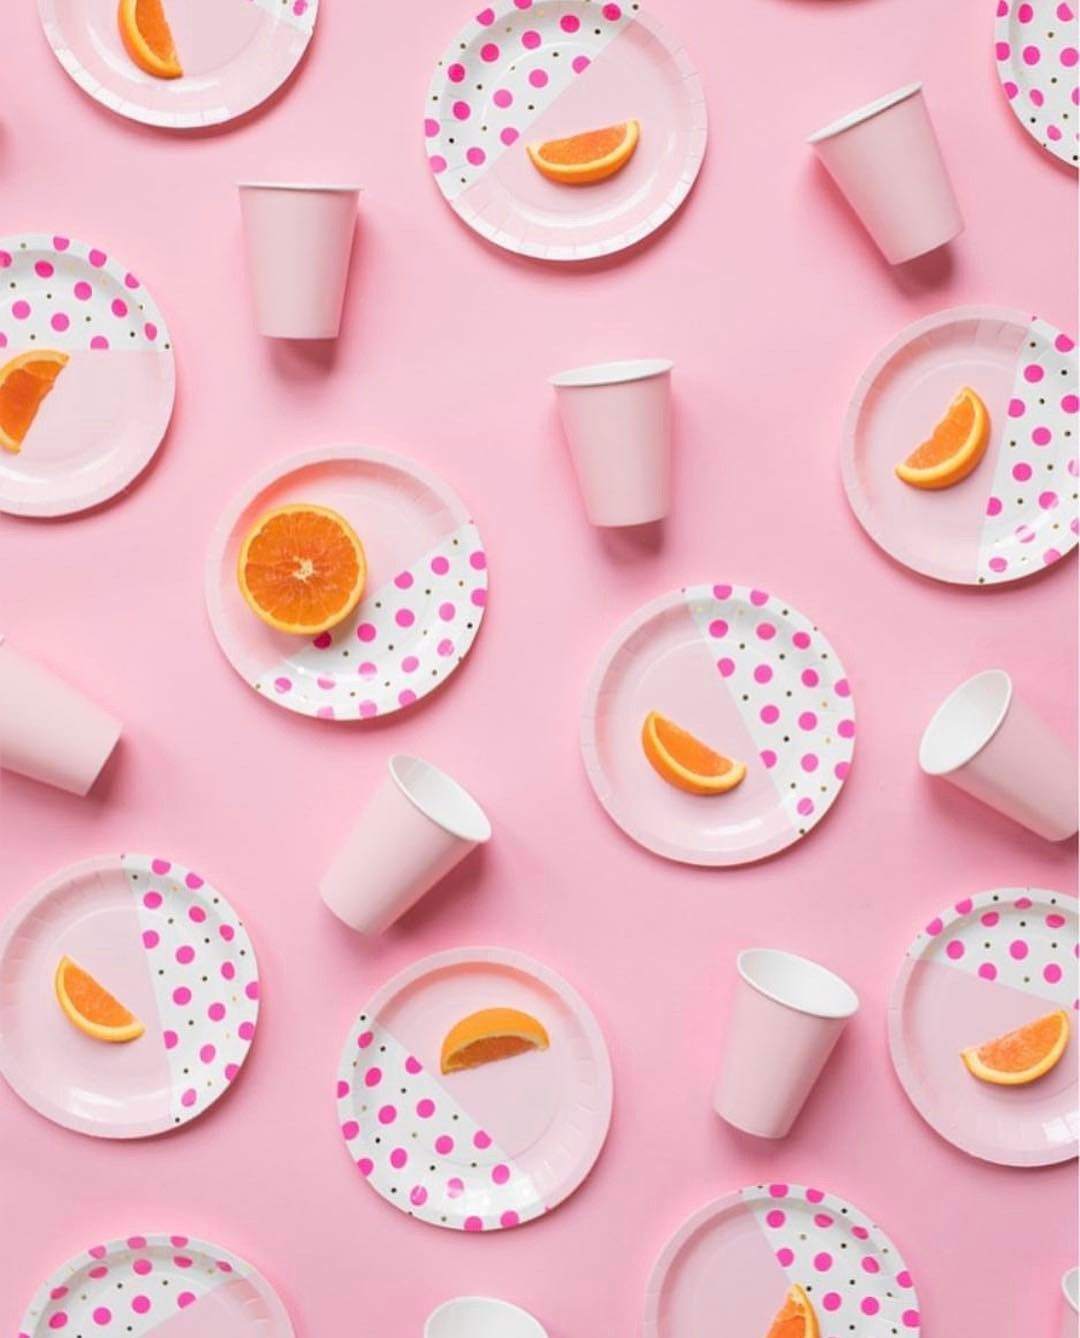 """3,334 Likes, 10 Comments - #candyminimal (@candyminimal) on Instagram: """"@bashpartygoods created this lovely pink and citrusy composition 💖🍊 #candyminimal"""""""